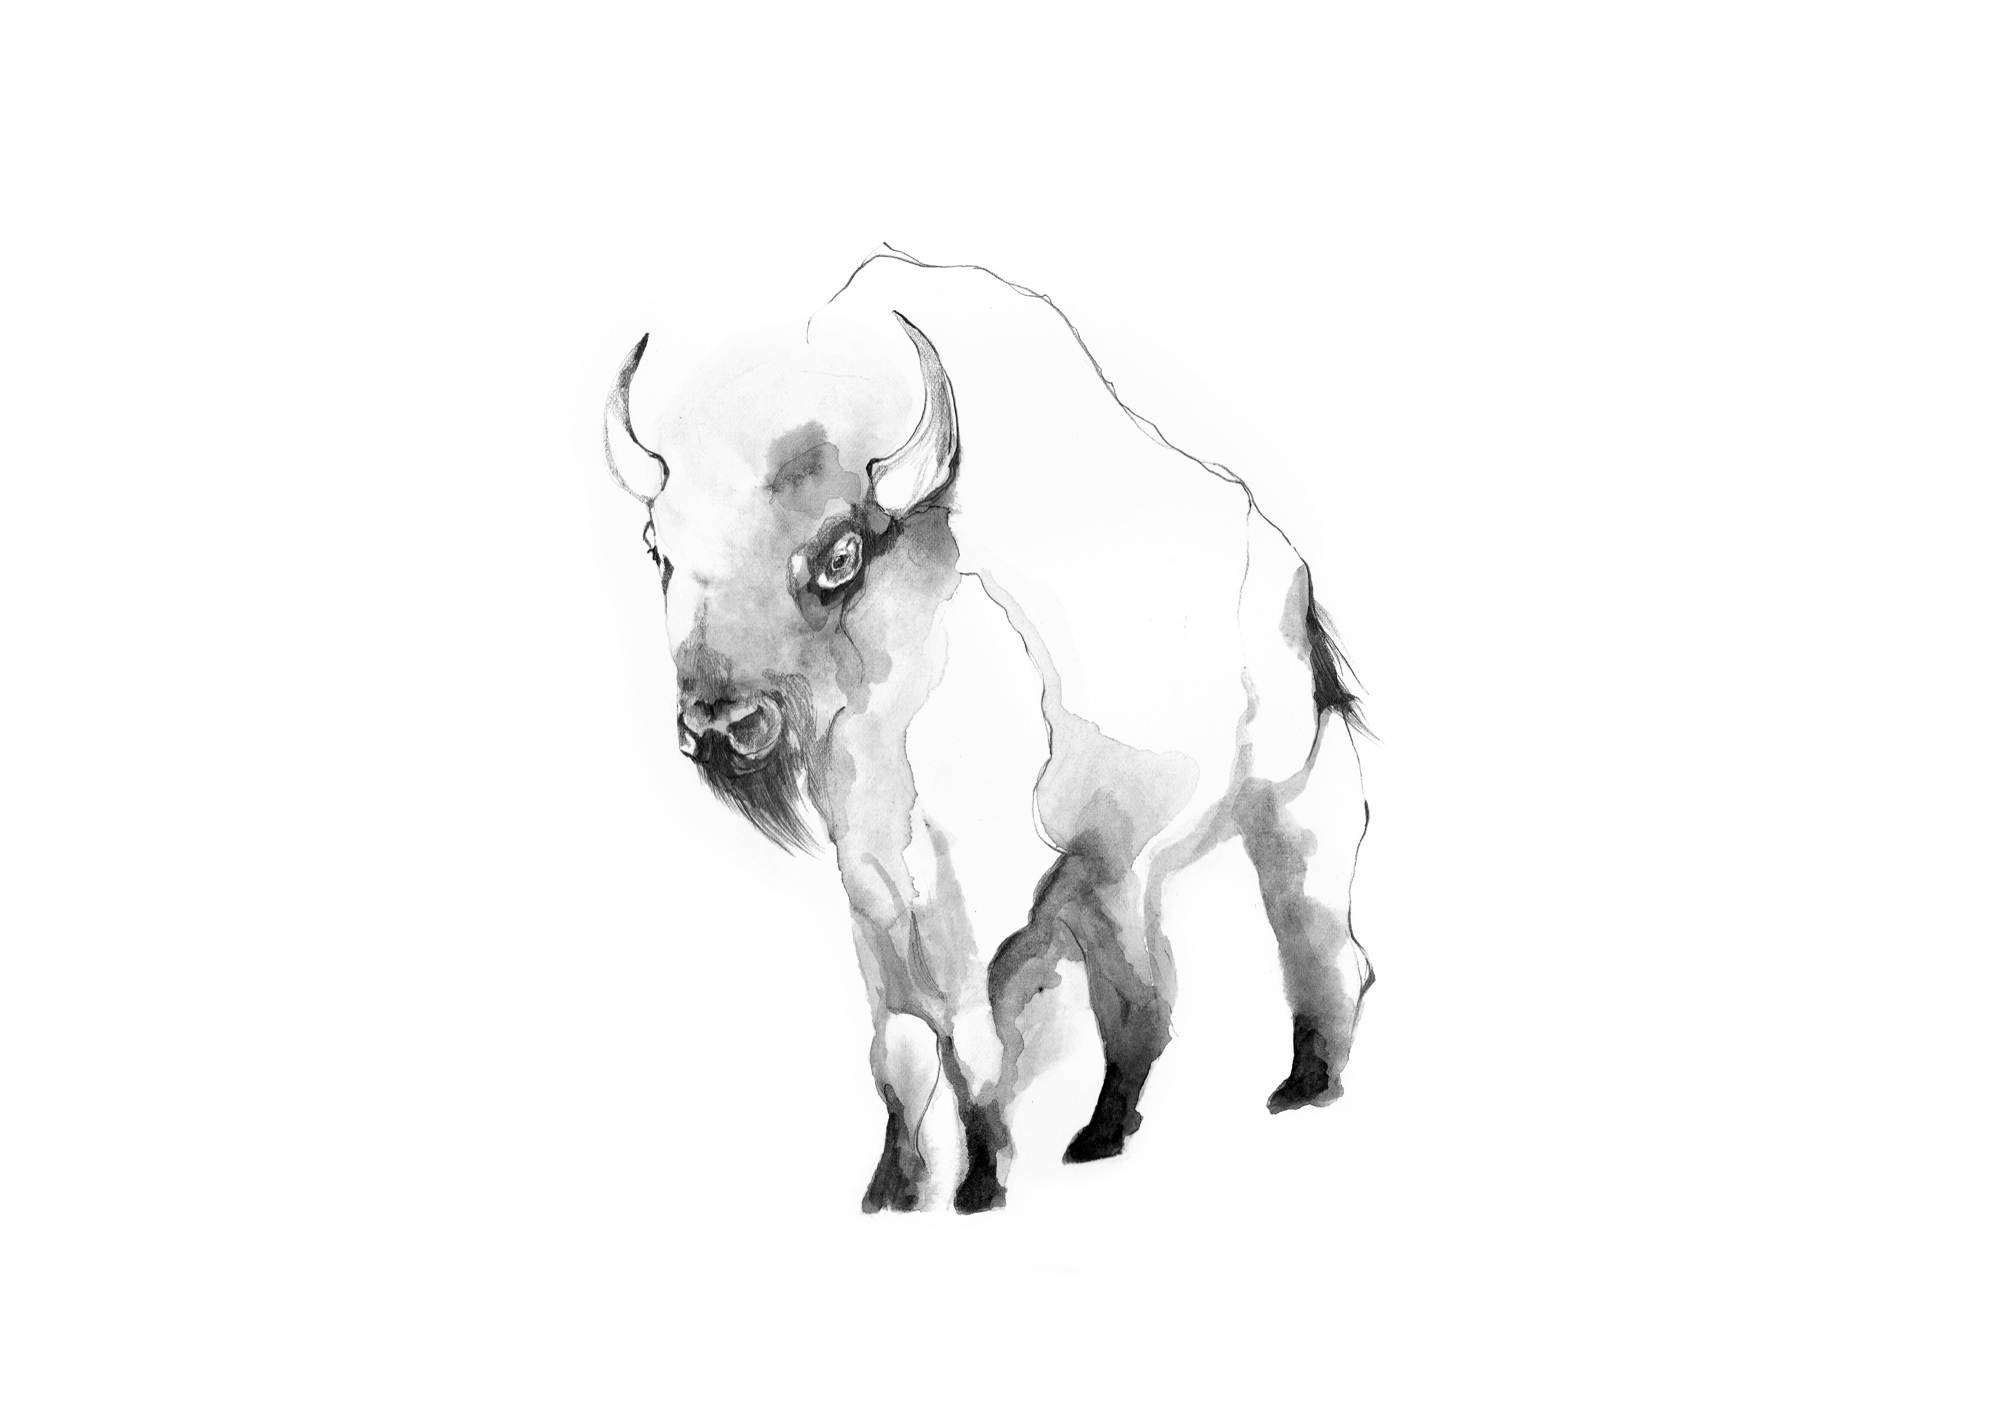 4-Bec_Kilpatrick_Illustration_Sea_Landbison3